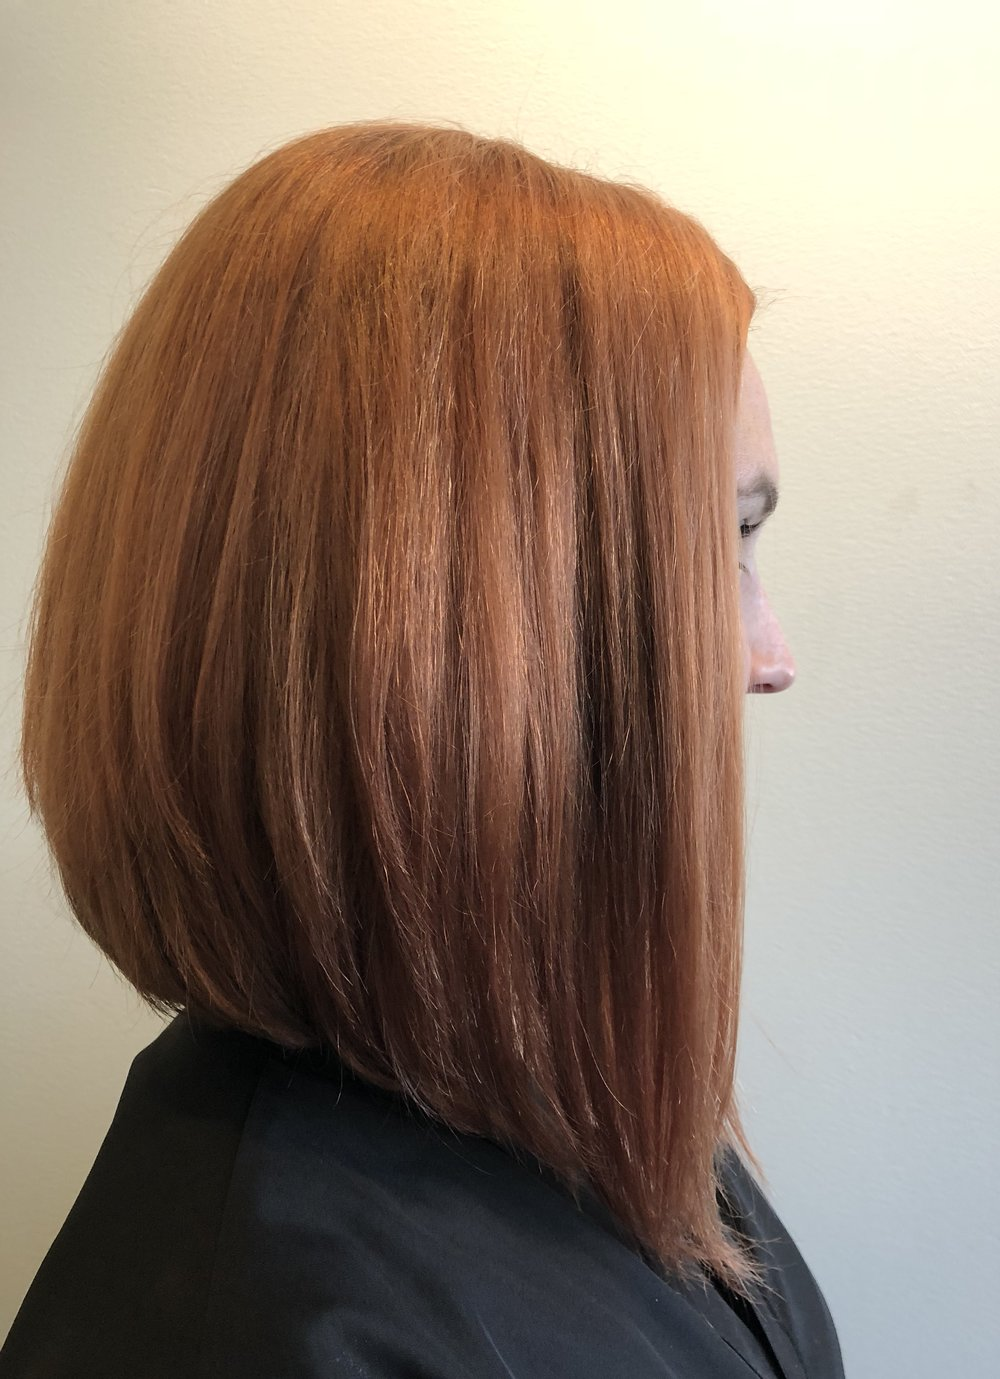 Copper Hair Color with Diagonal Forward Bob  Hair Cut.  Hairbabestudio.com